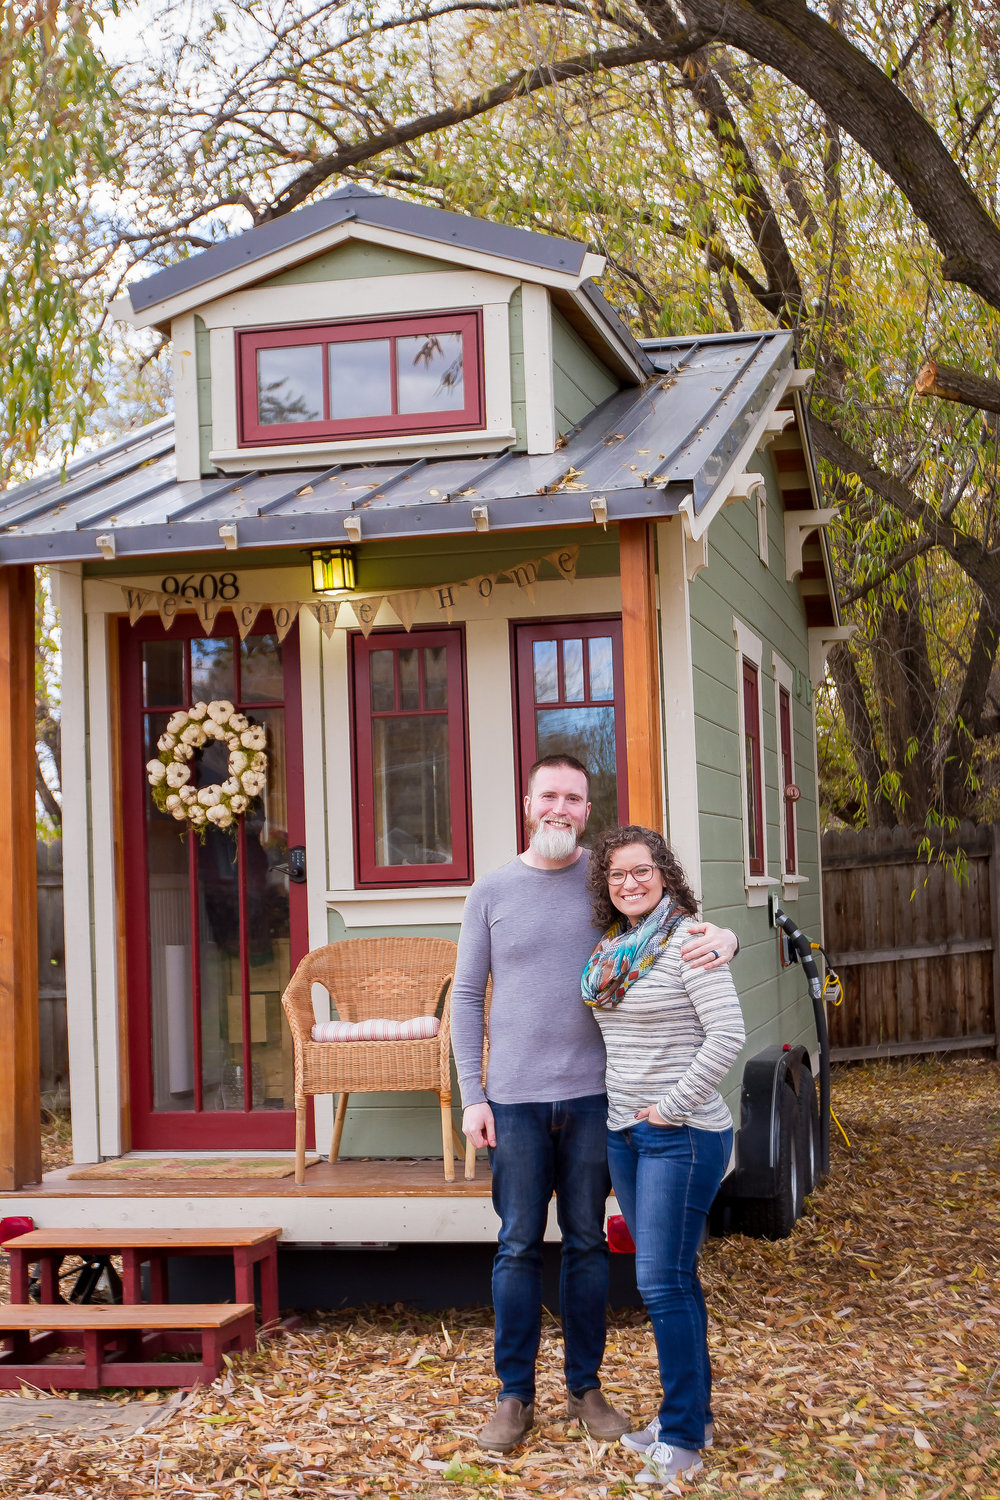 We love our tiny house!